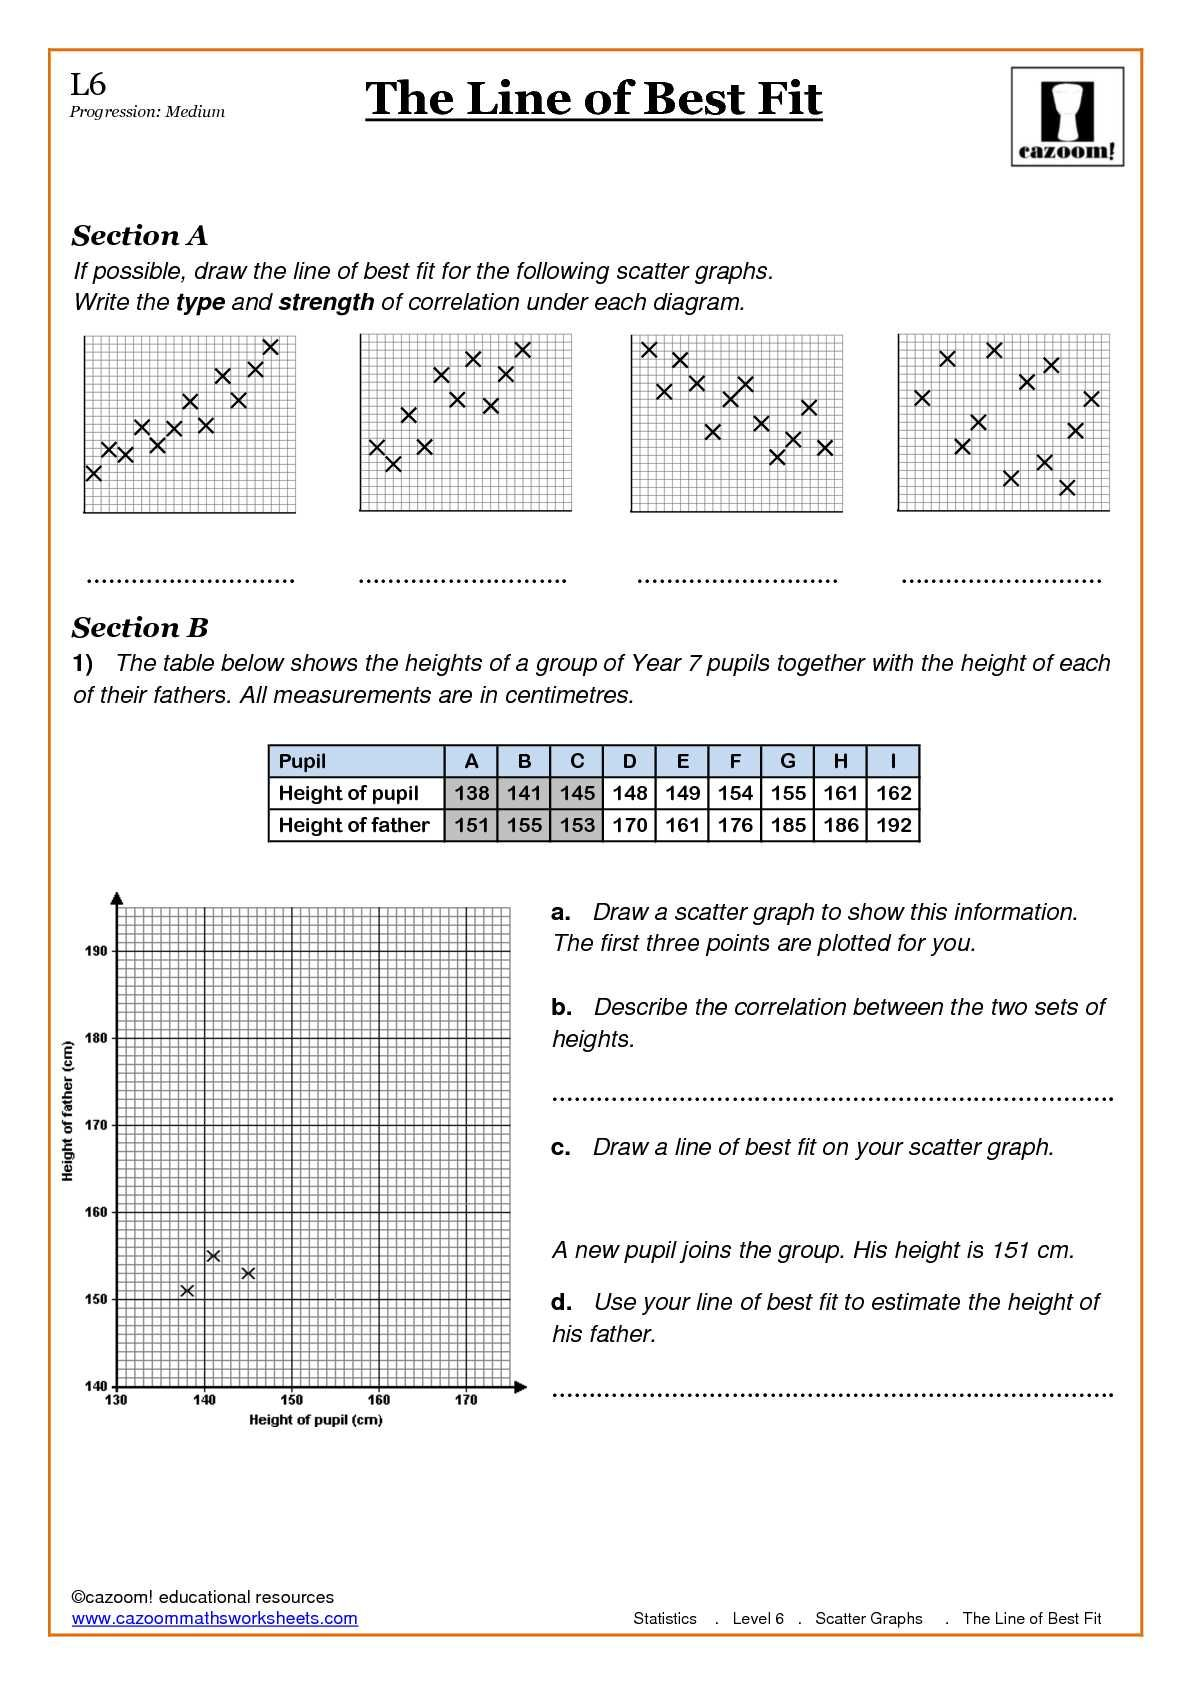 Worksheet Math Test For Year 5 Wosenly Free Maths Ks3 Worksheets | Ks3 Science Revision Worksheets Printable